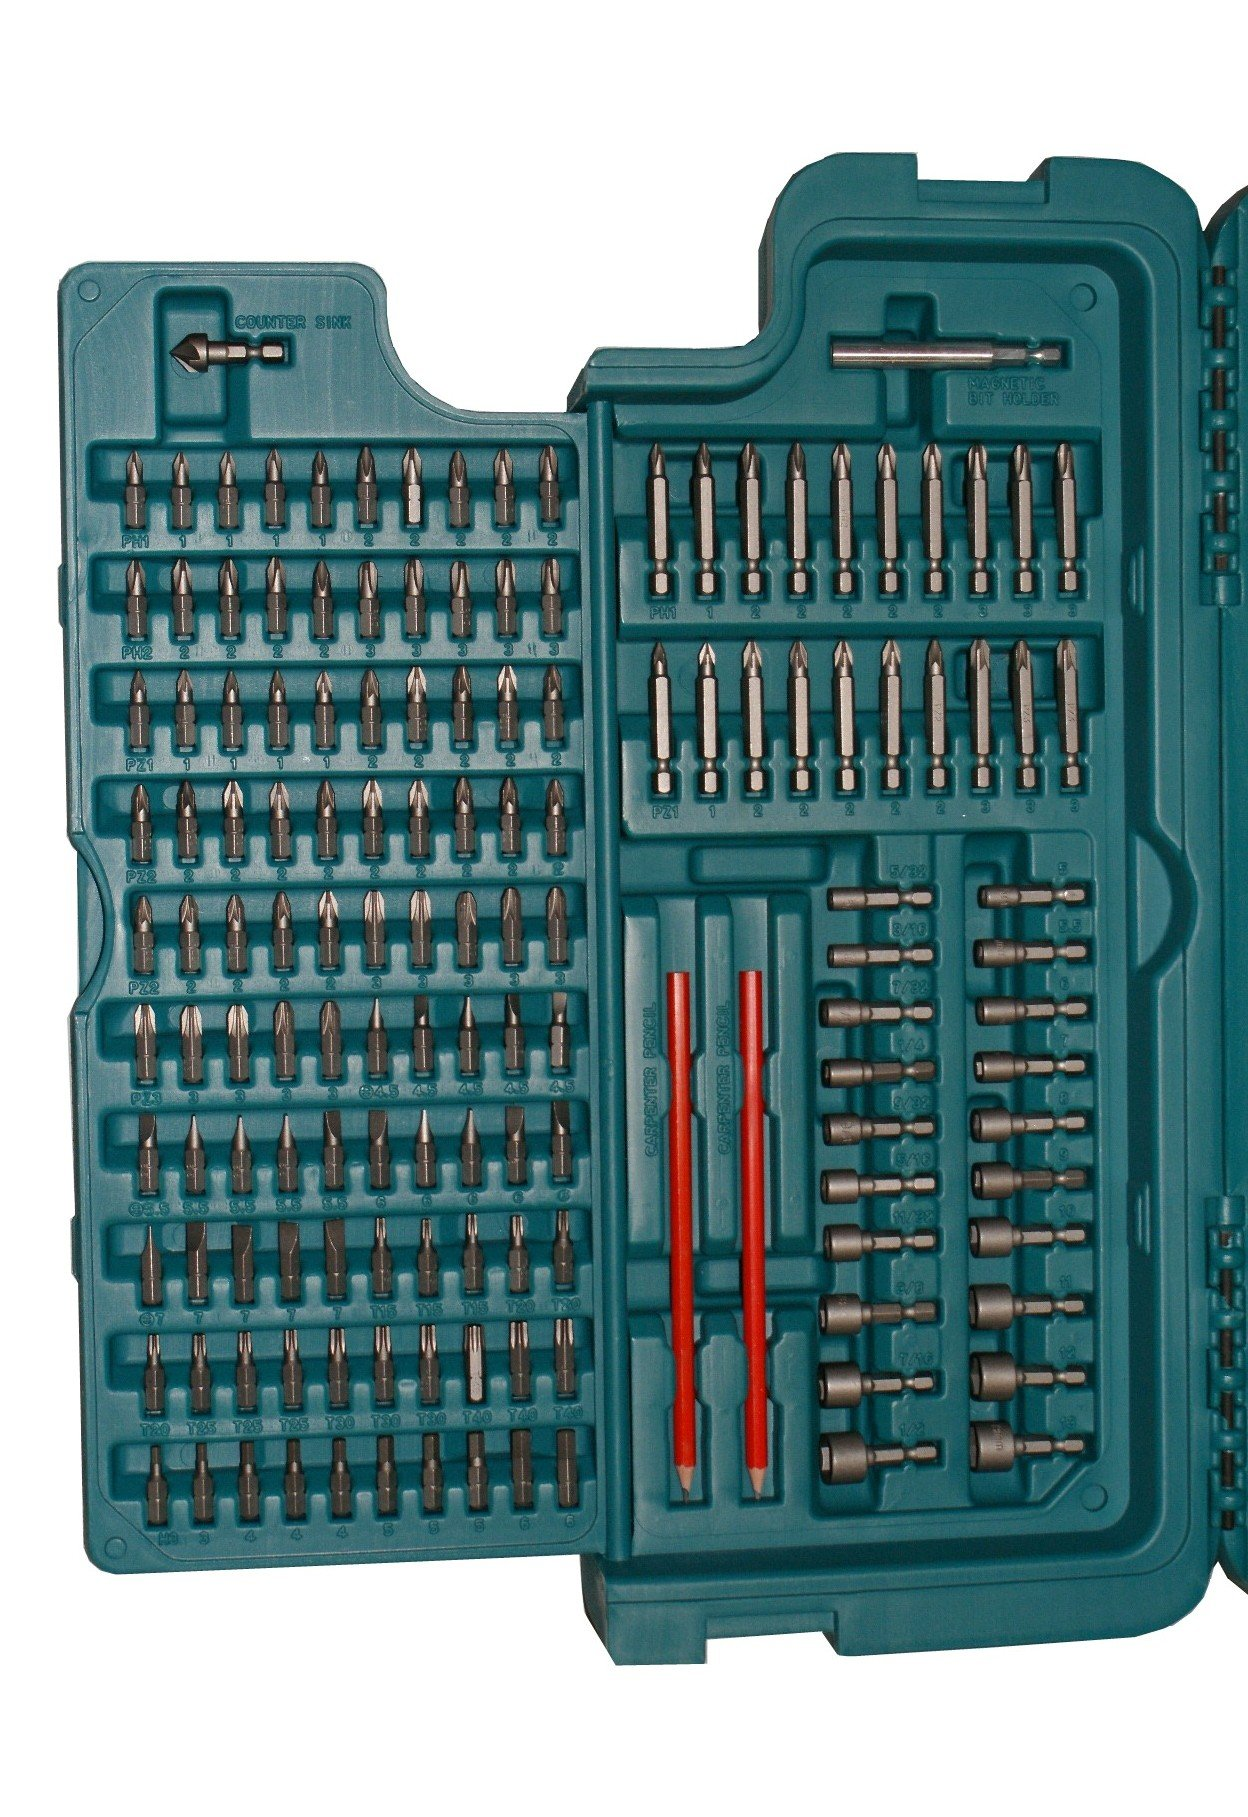 MAKITA 252 PIECE ACCESSORY KIT IN BLOW MOULDED CASE SCREWDRIVER, DRILLBITS GREAT FOR BUILDERS,TRADE,DIY by Makita (Image #4)